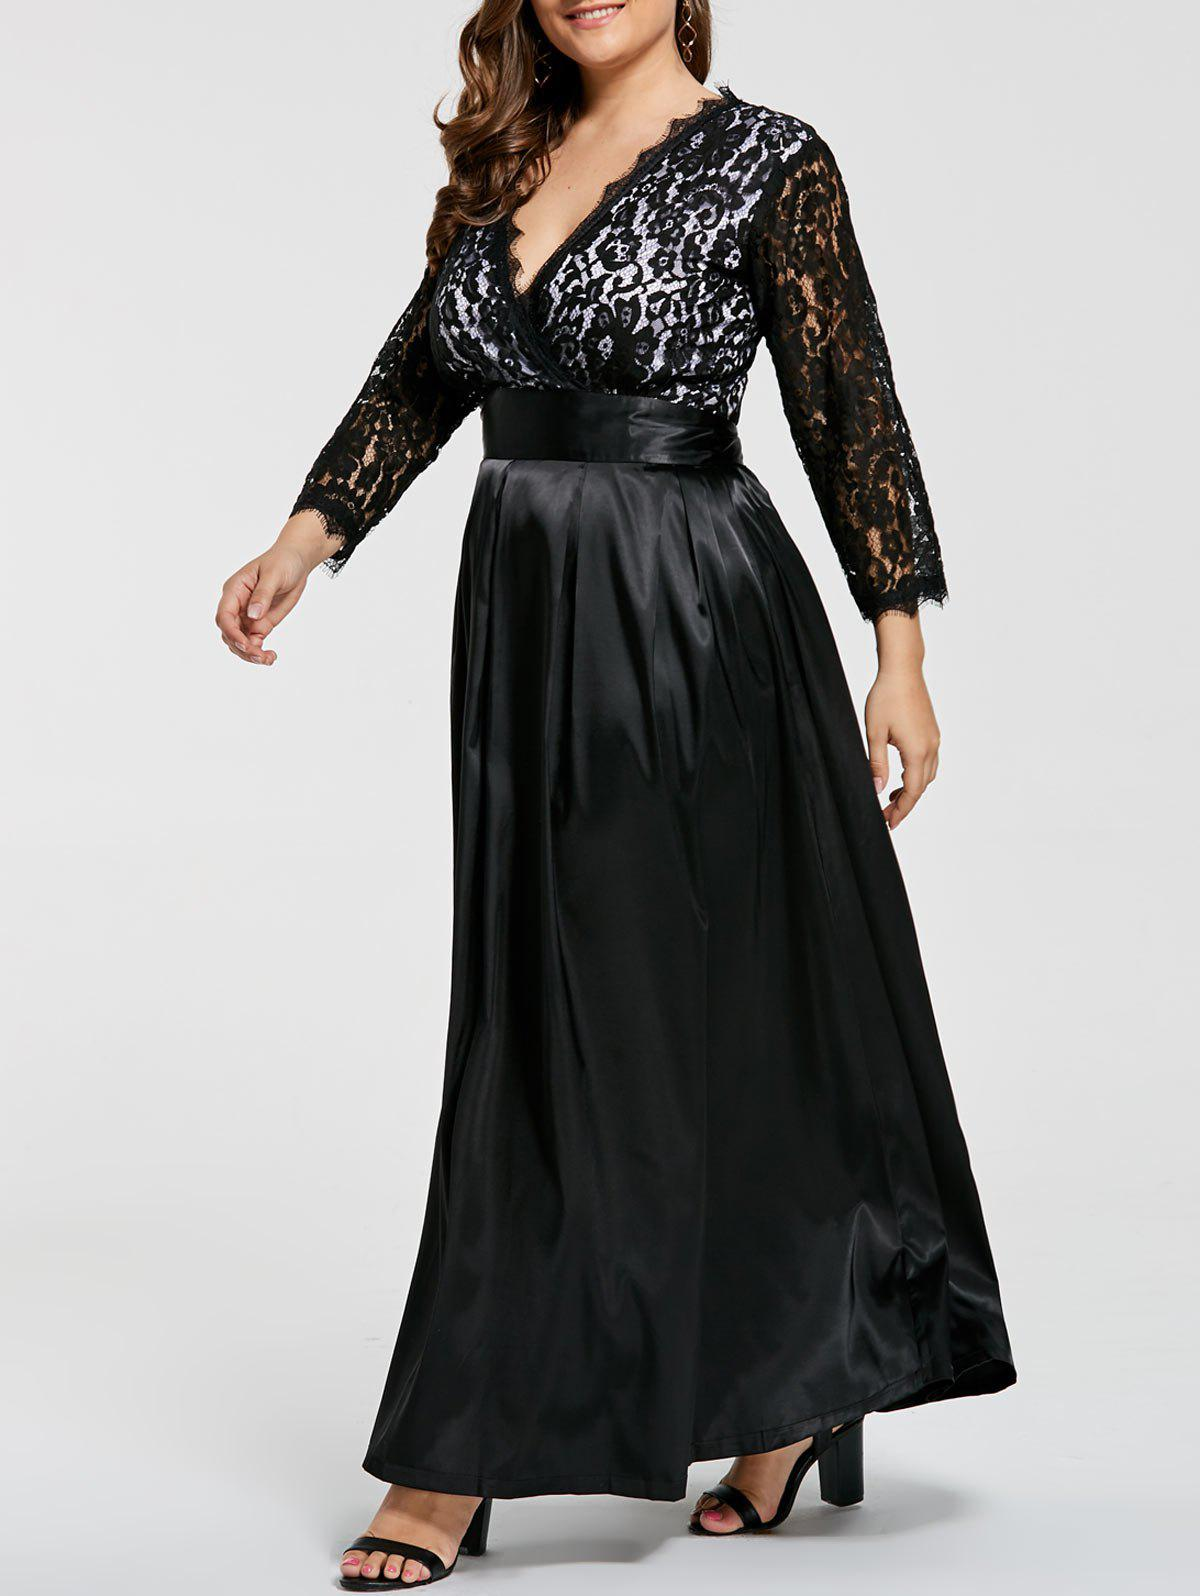 Plus Size Lace Sleeve V Neck Maxi Formal Dress plus size maxi lace formal dress with sleeves